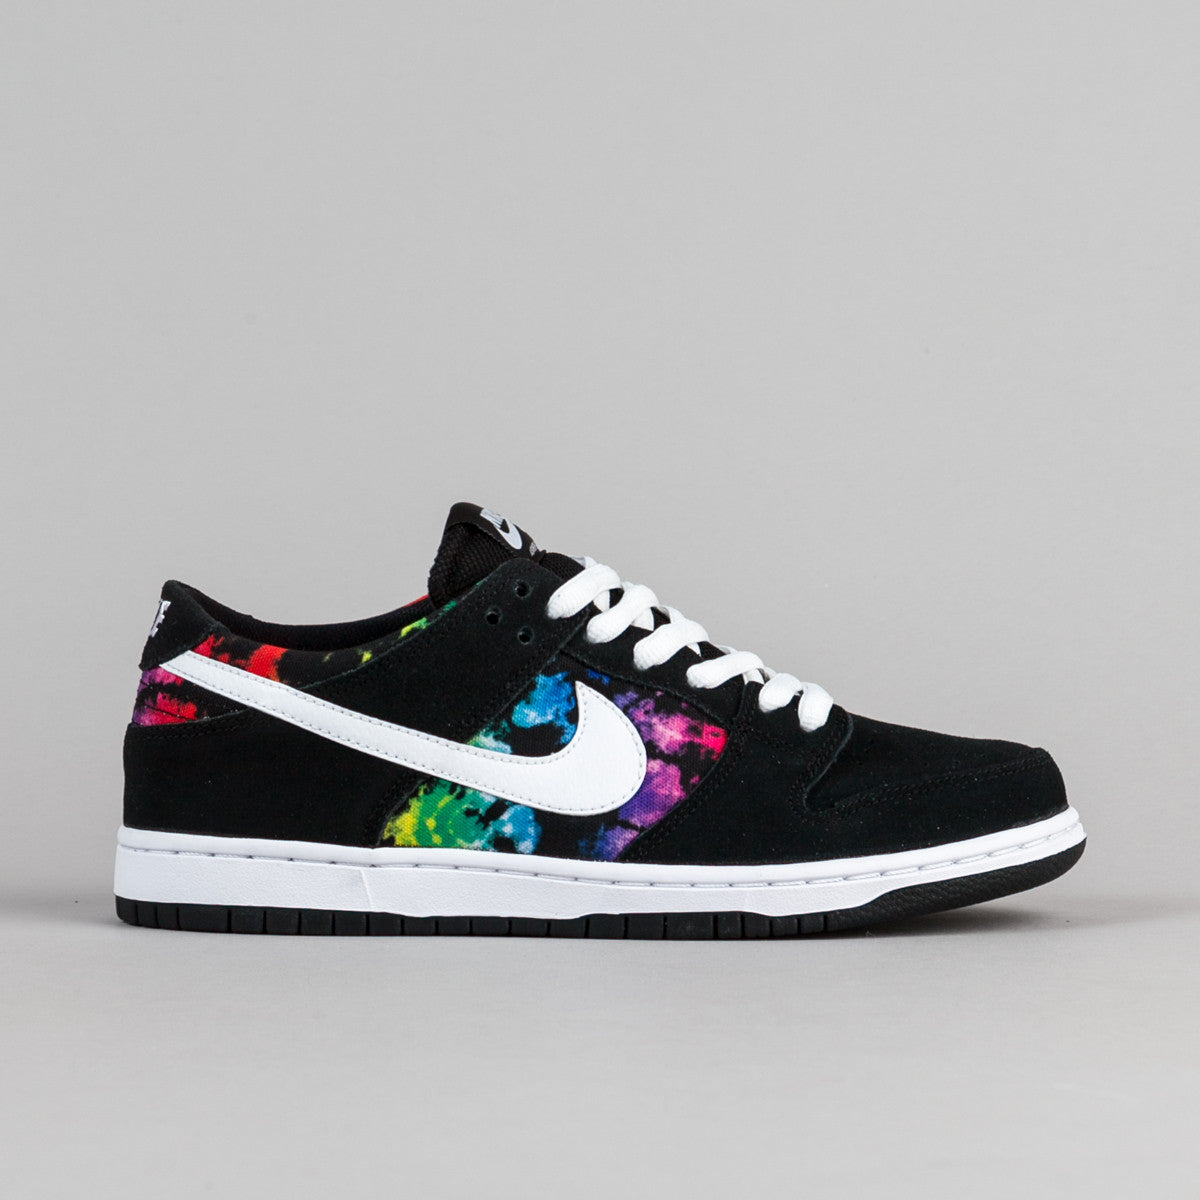 5a91c419b0 ireland nike sb dunk low philippines 8e920 d8d72